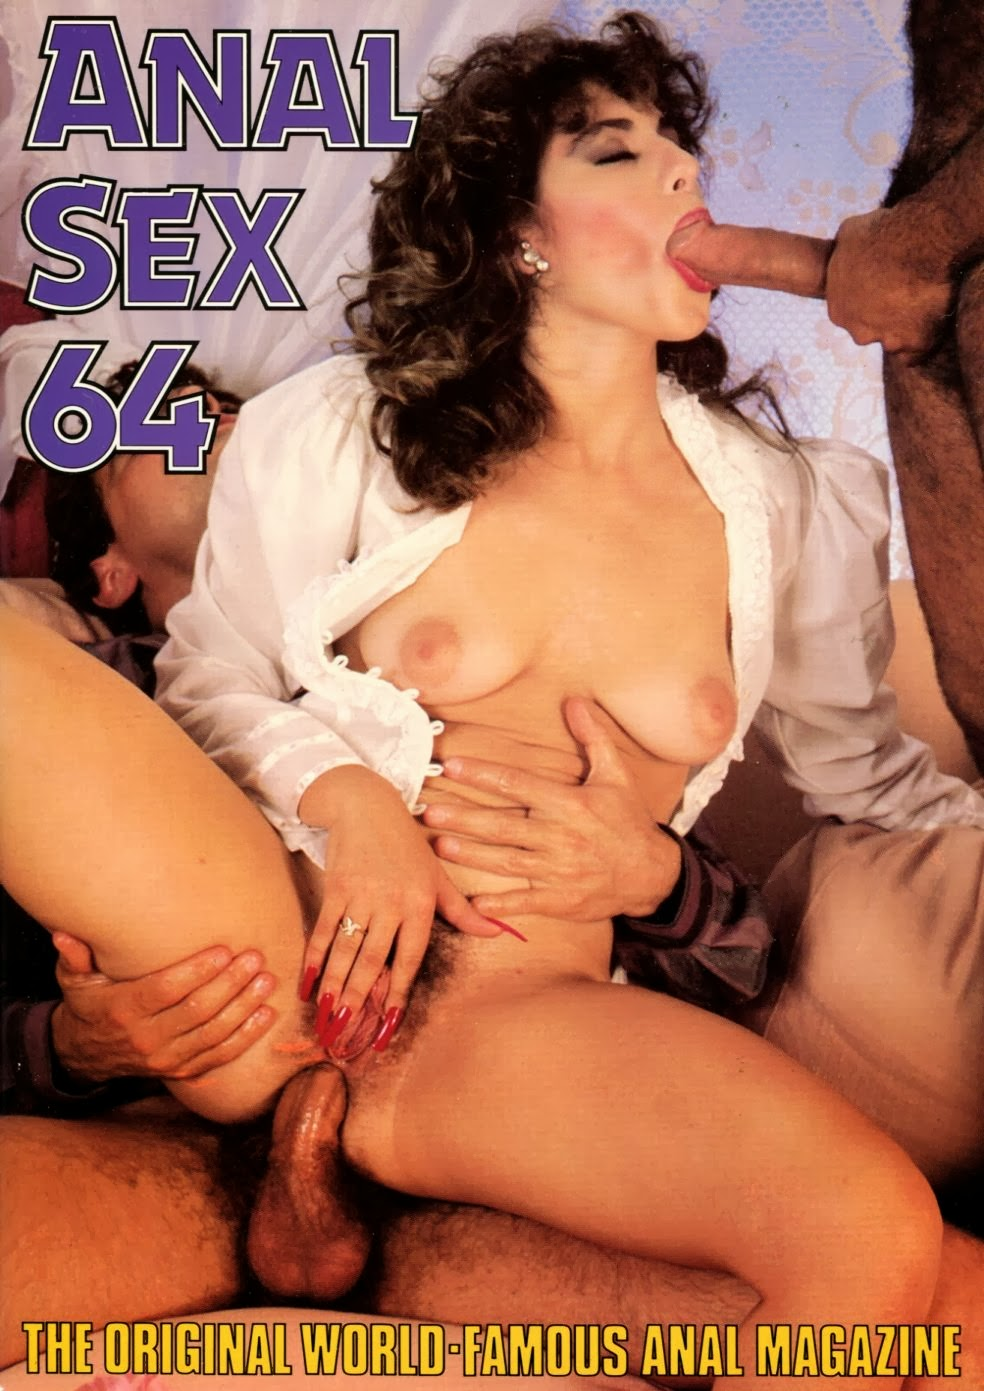 Serie sexy video gratis massaggi porno